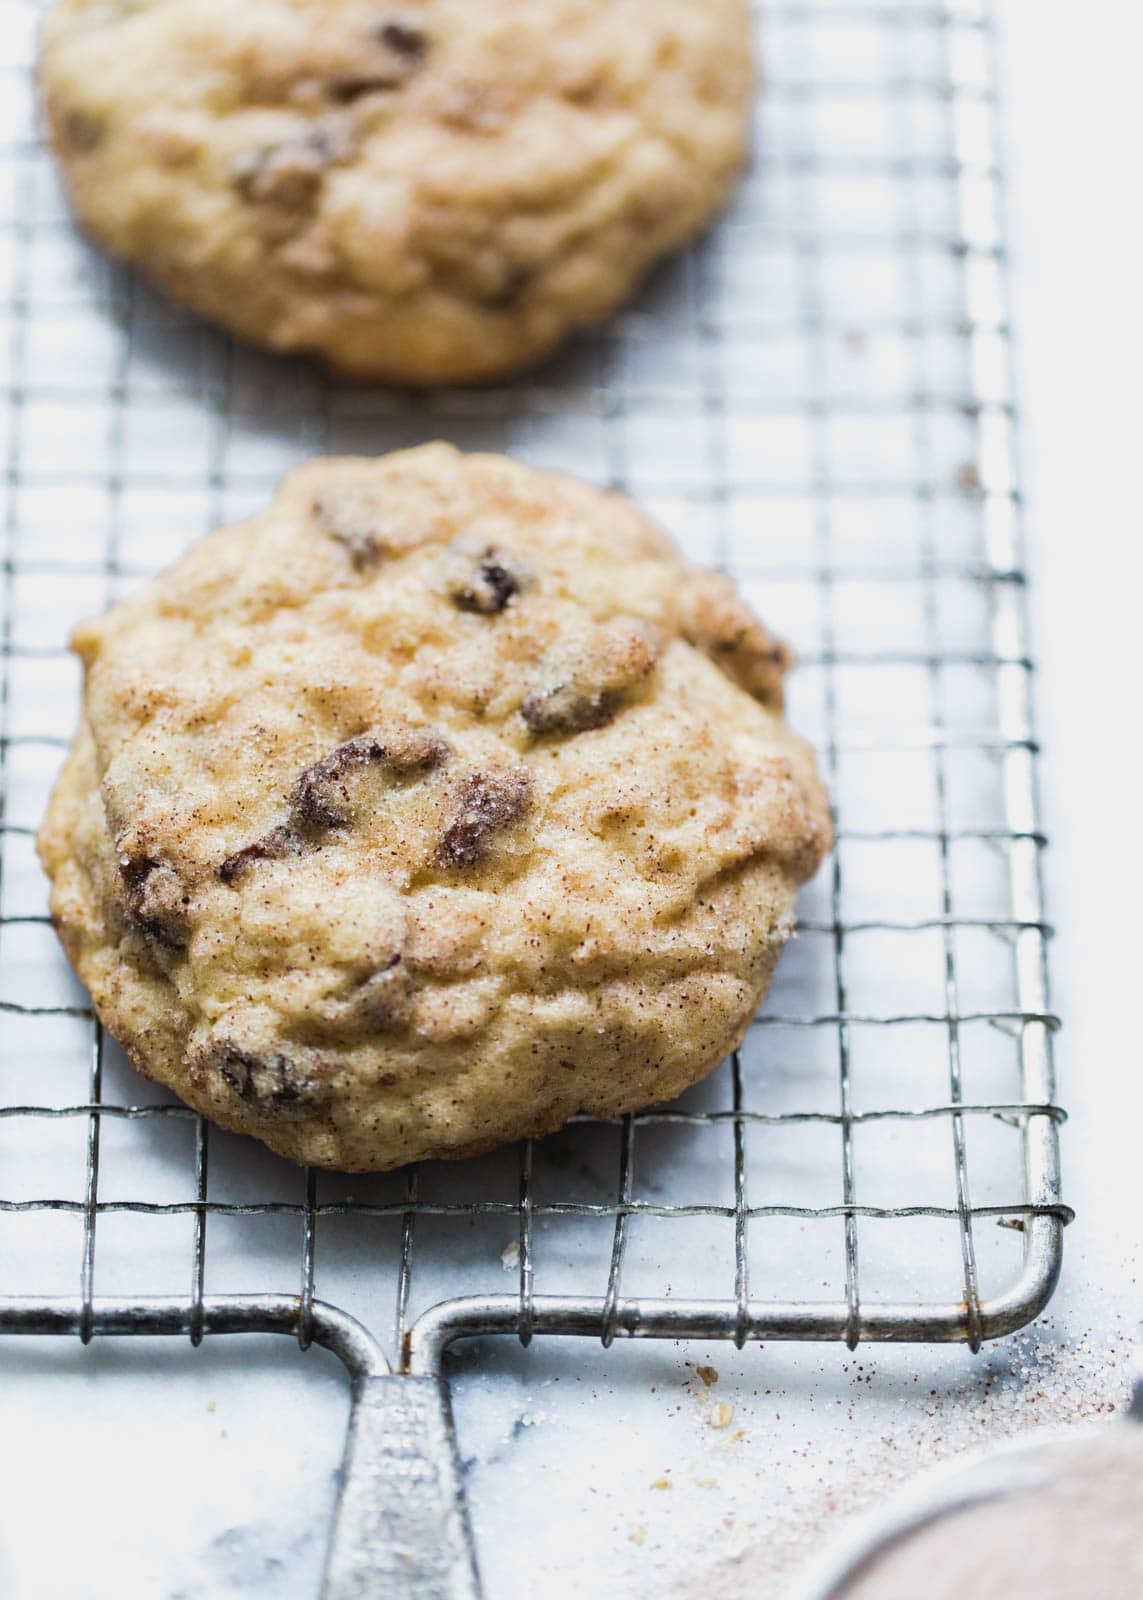 Giant, chewy Oatmeal Raisin Snickerdoodle Cookies